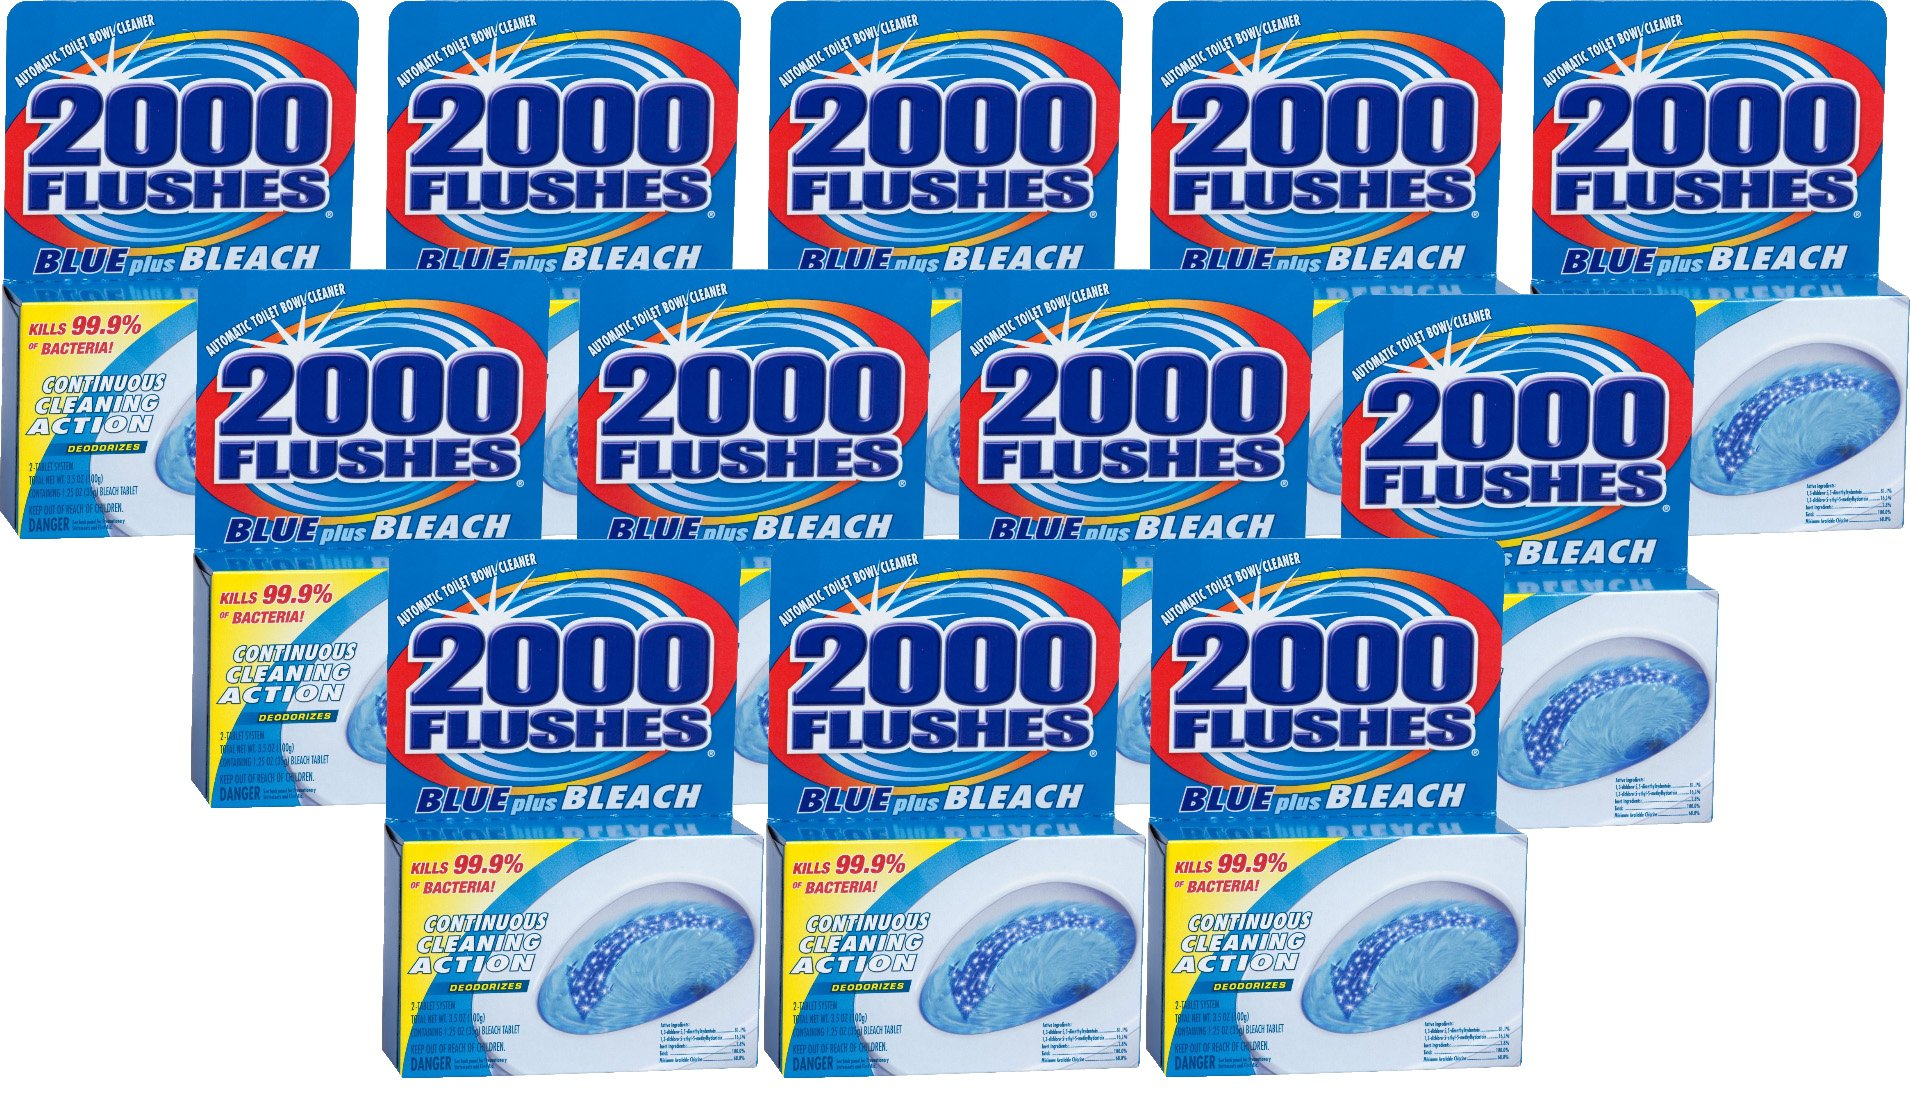 2000FlushesBluePlusBleach Automatic Toilet Bowl Cleaner, 3.5 OZ [12-Pack] by 2000 FLUSHES